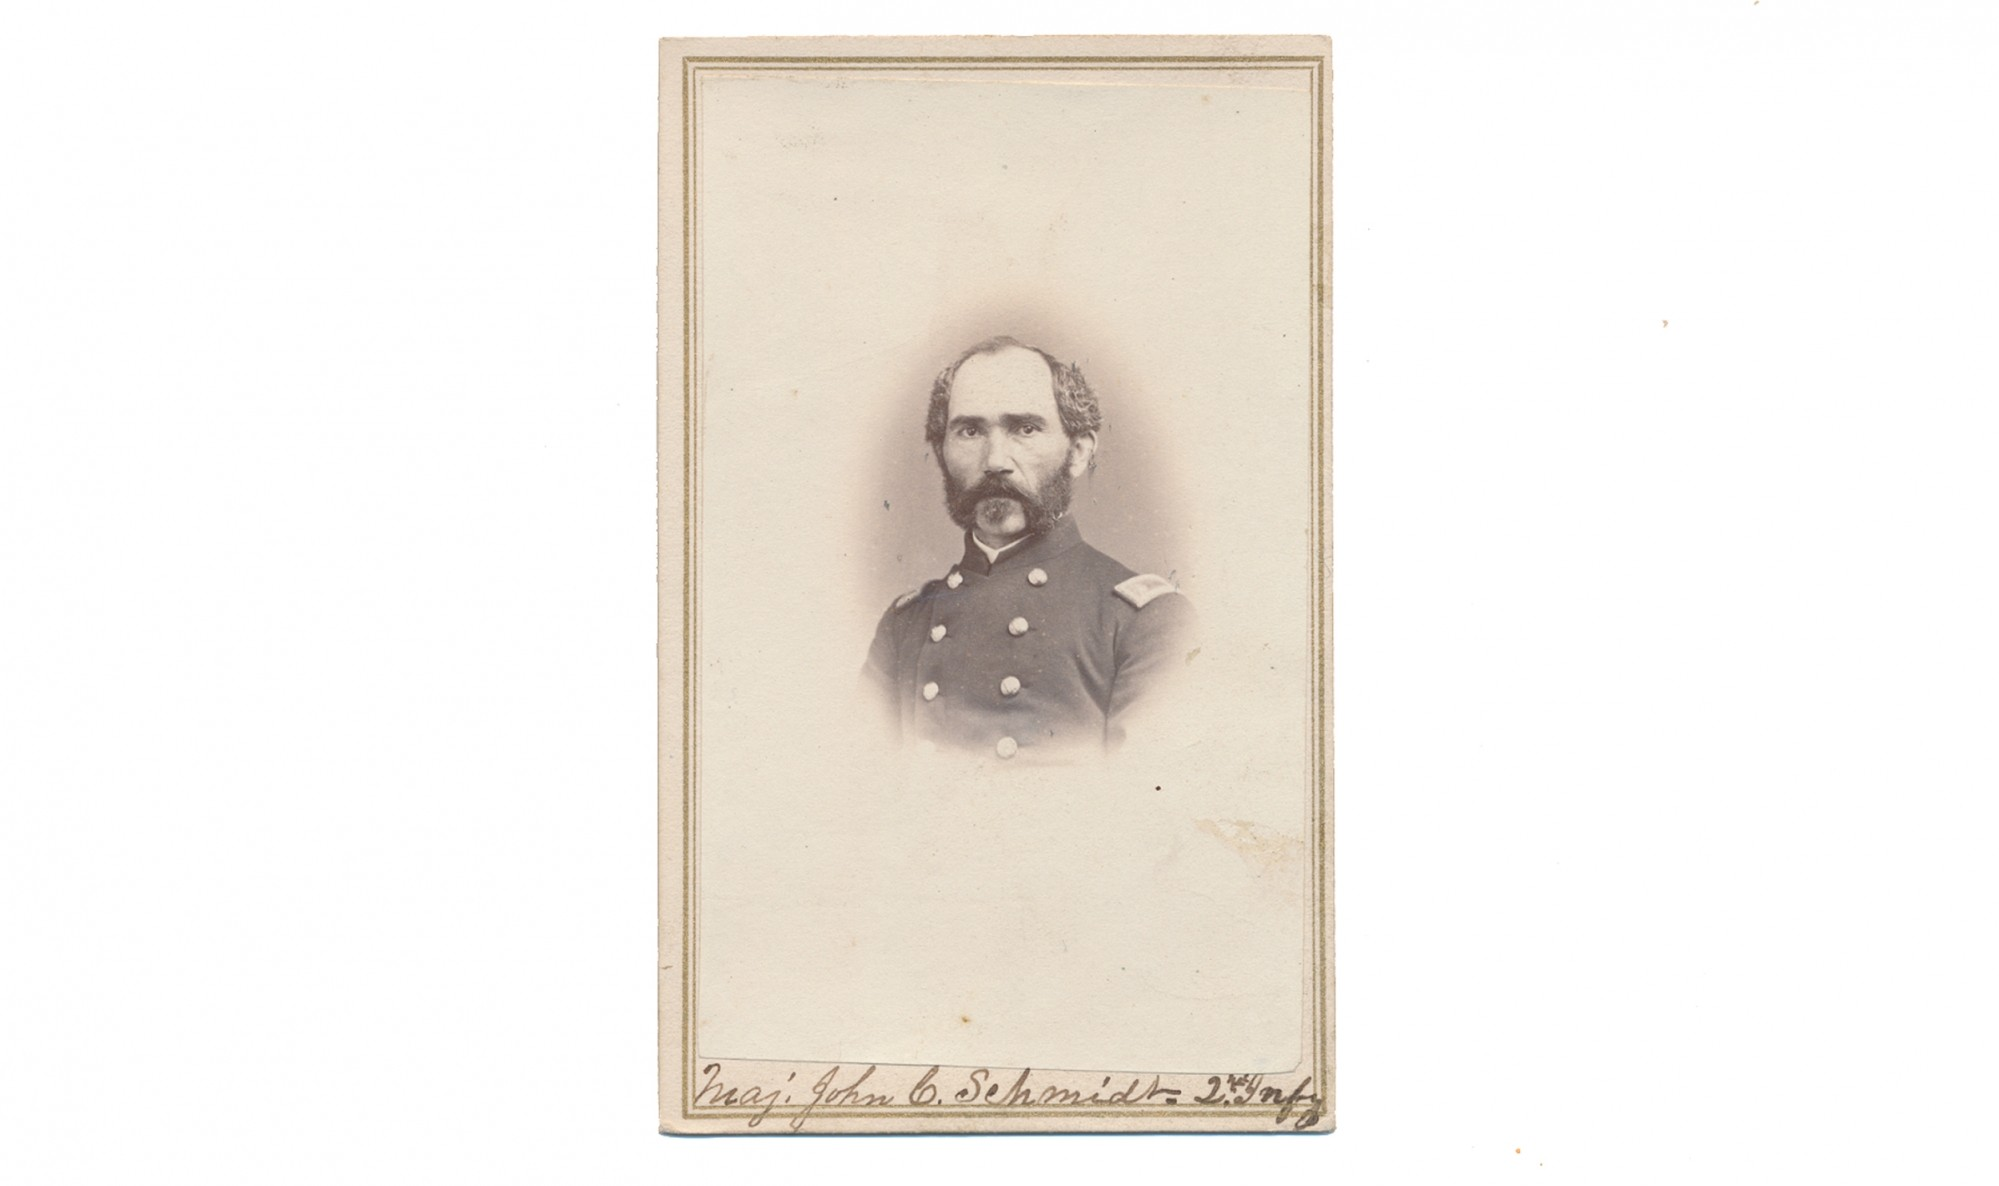 CDV OF MAJ. JOHN C. SCHMIDT, 2ND CALIFORNIA INFANTRY